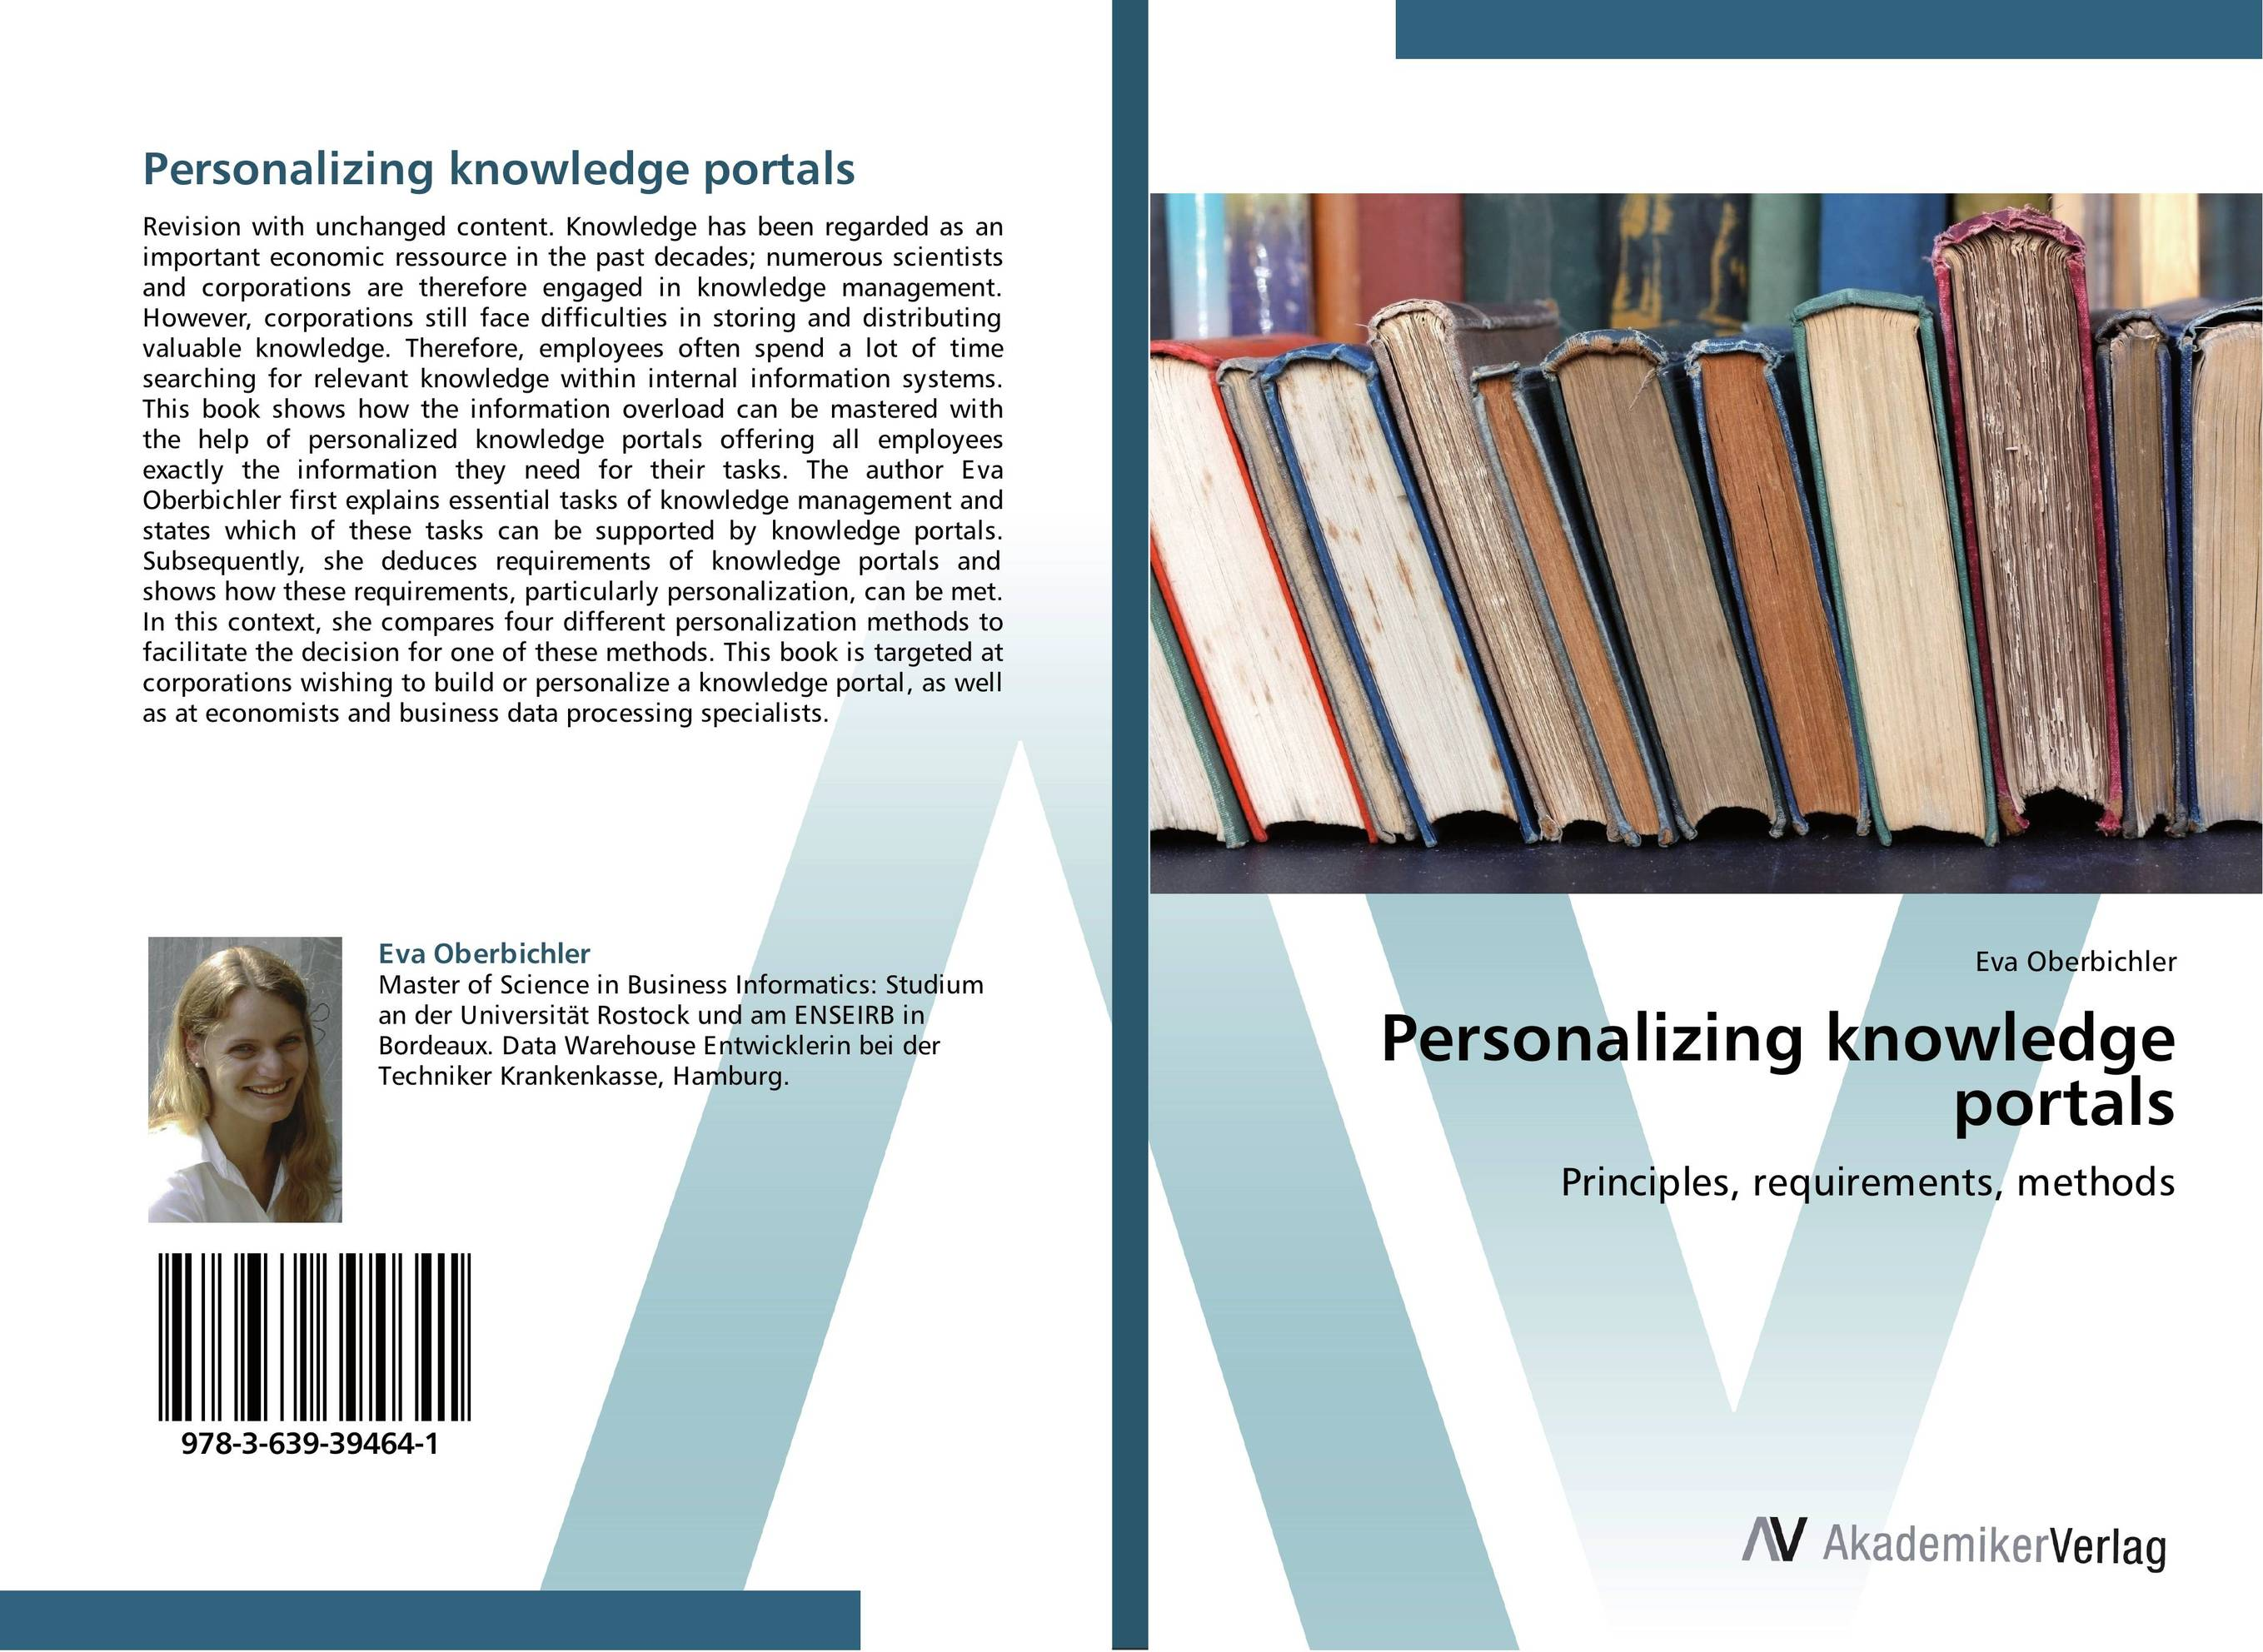 Personalizing knowledge portals retaining your valuable knowledge employees